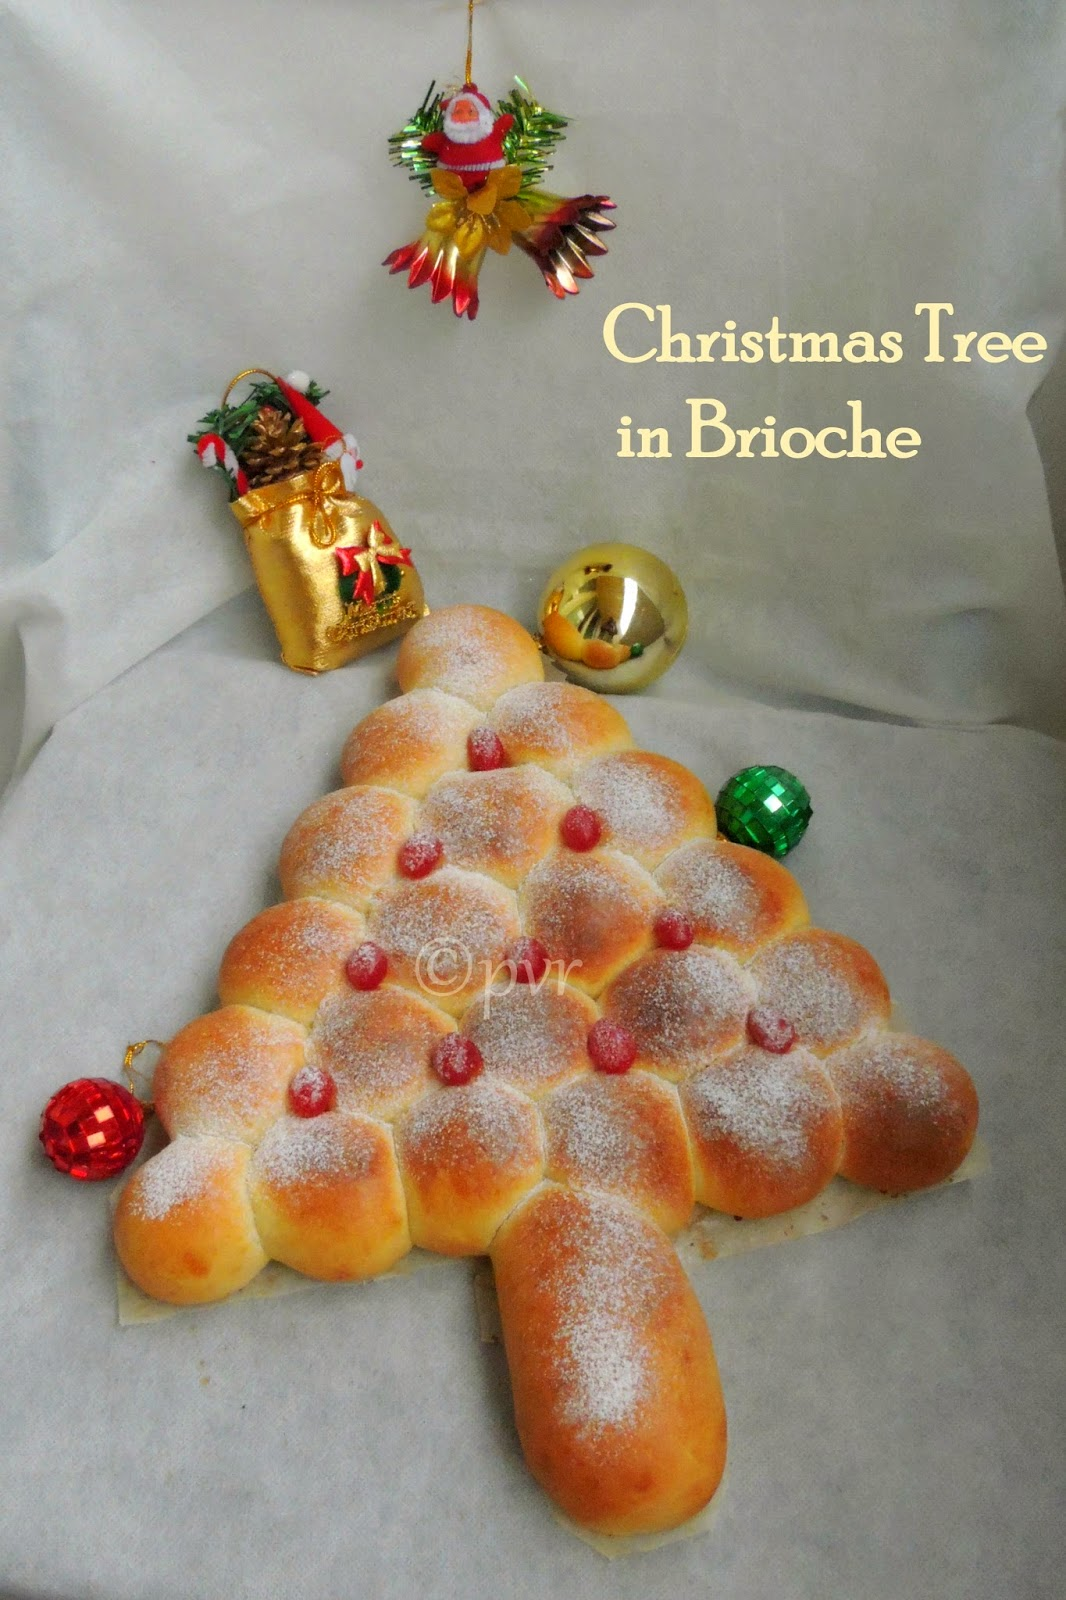 Xmas tree, Sapin de noel, christmas tree in brioche